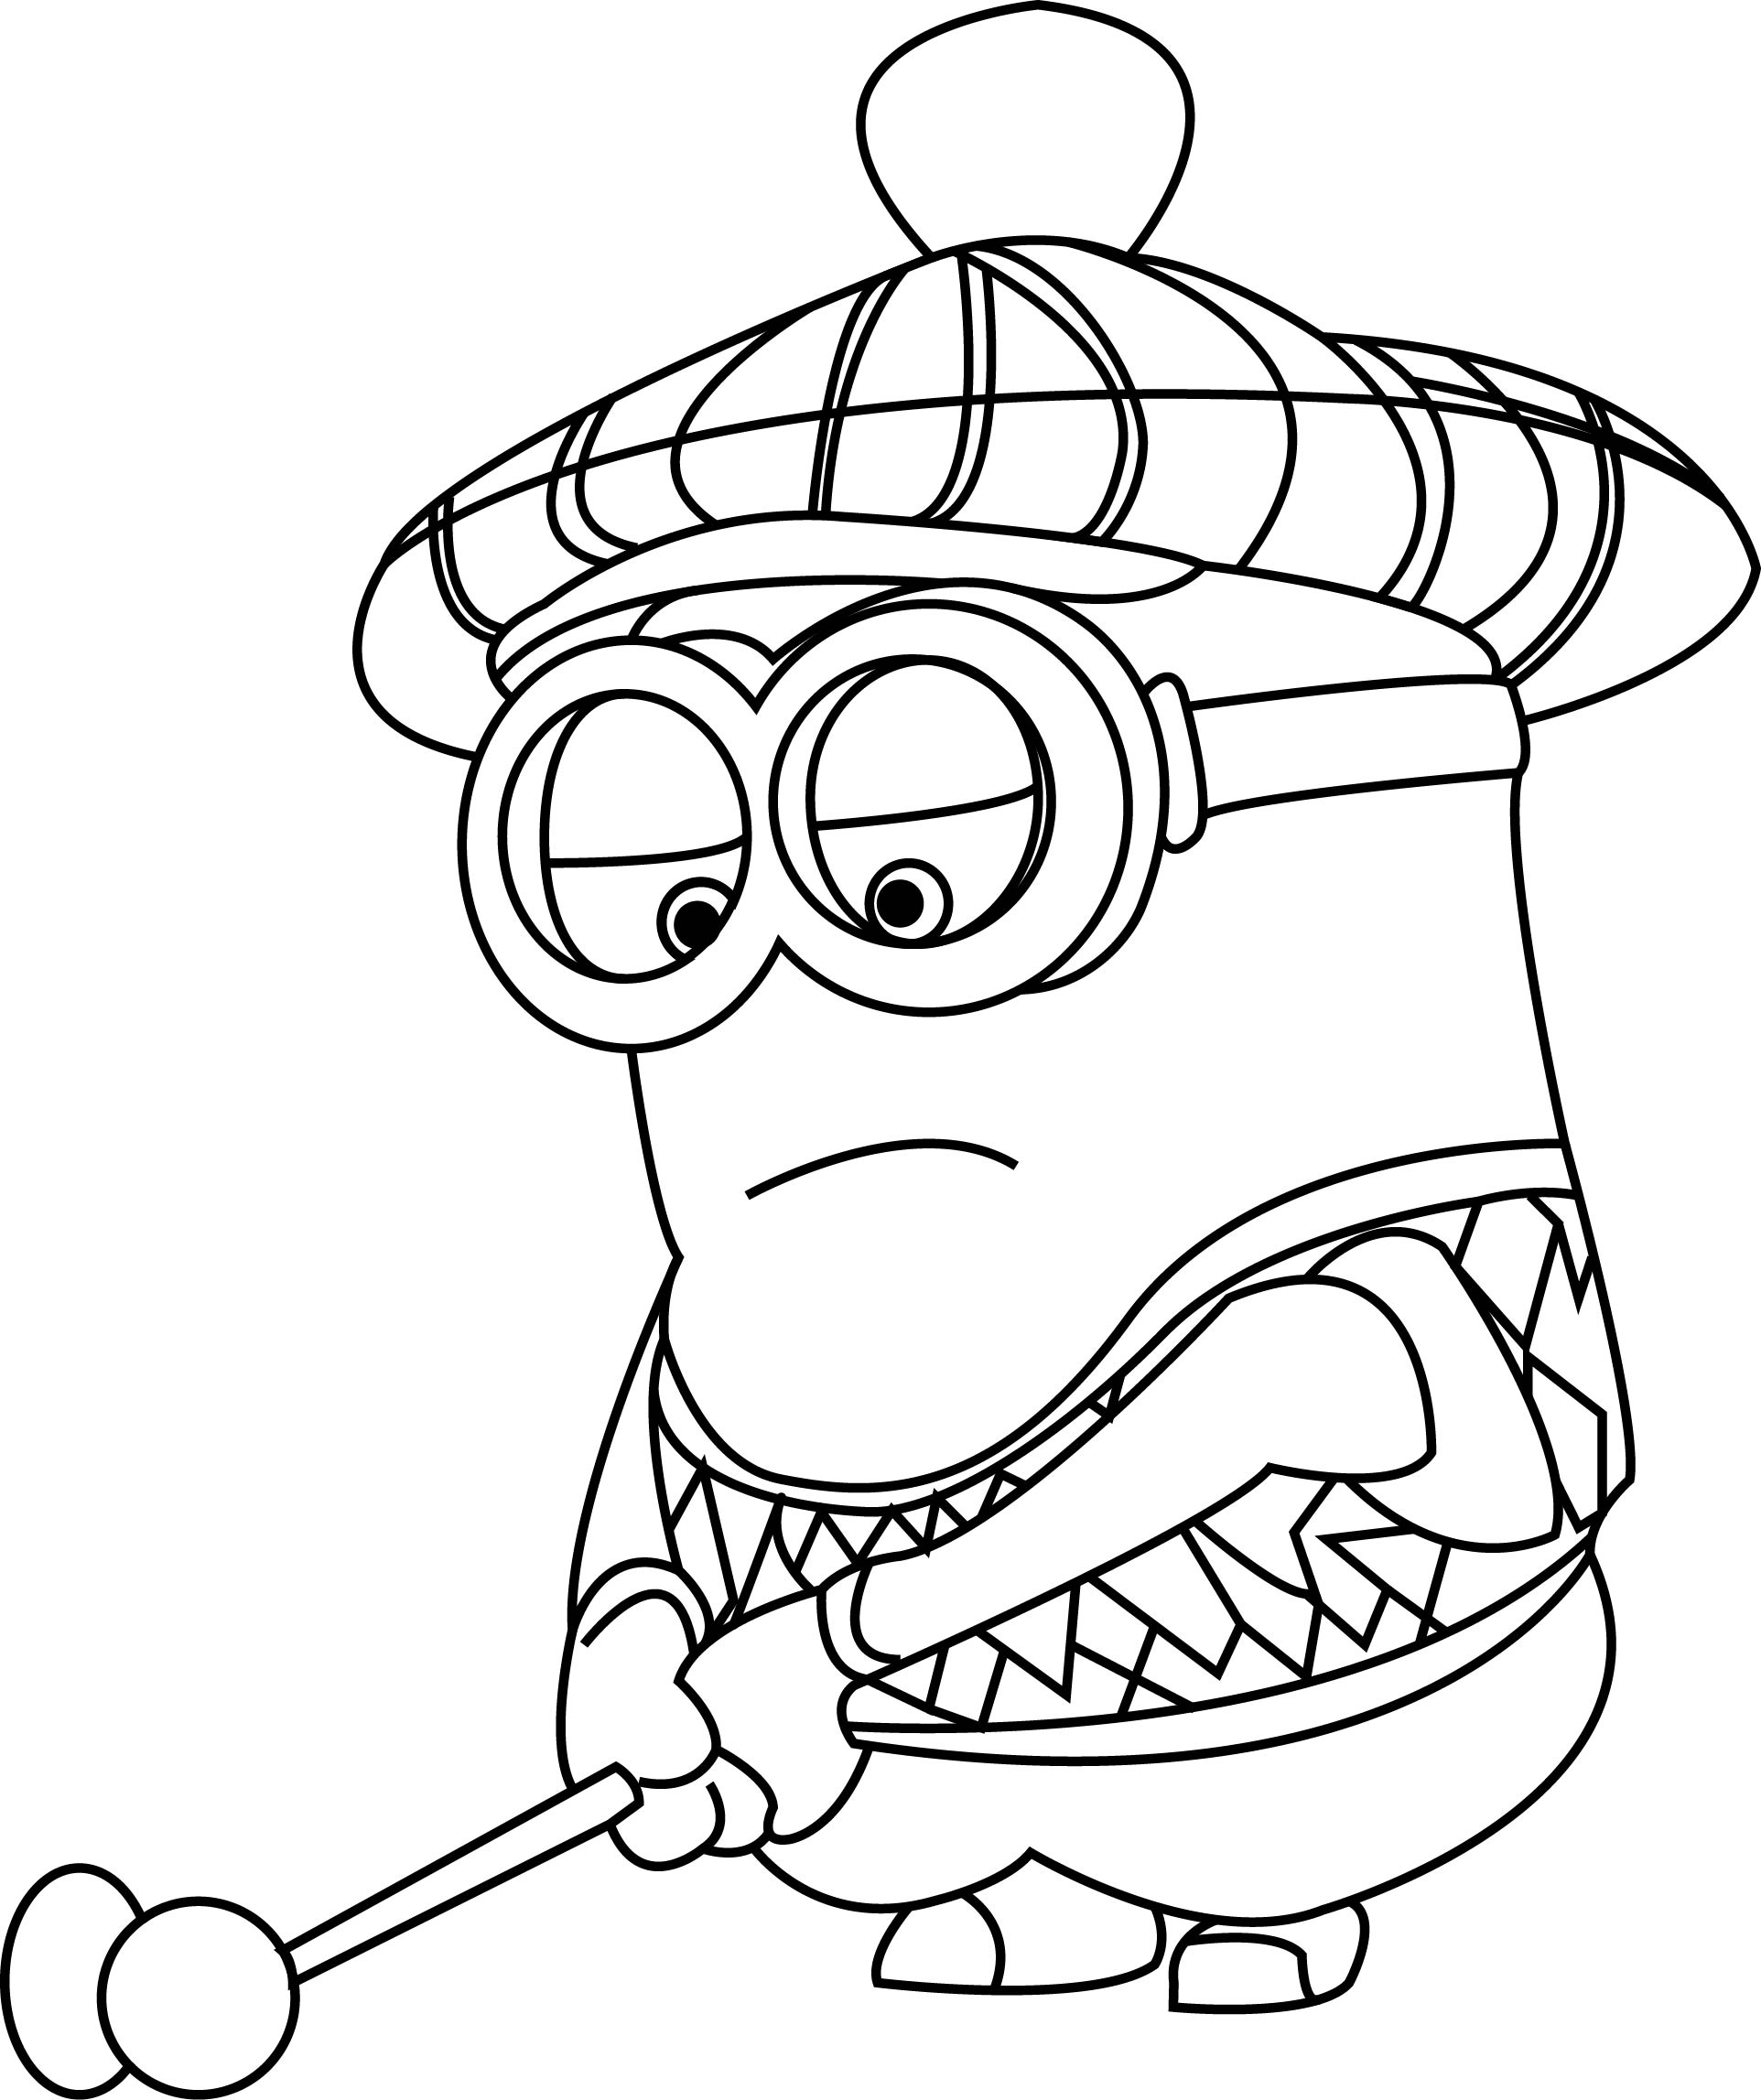 1924x2295 Golf Coloring Pages Awesome Minion Golf Coloring Pages Coloring